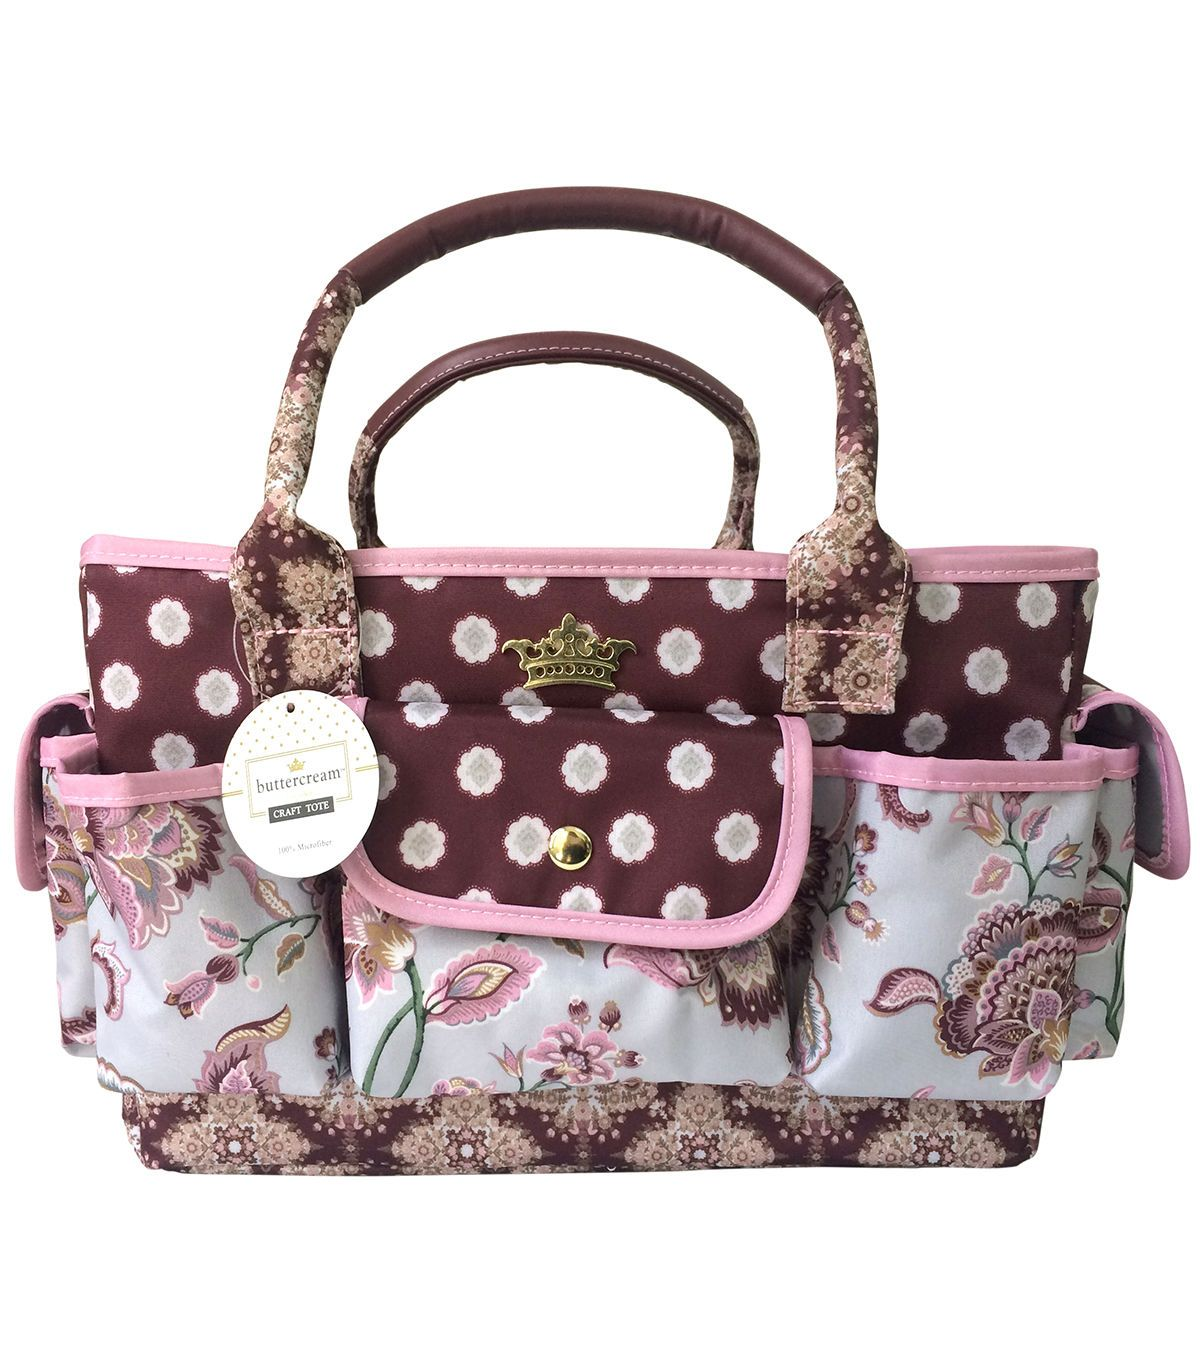 Buttercream™ Craft Tote-Elizabeth | Craft Room Necessities | Pinterest